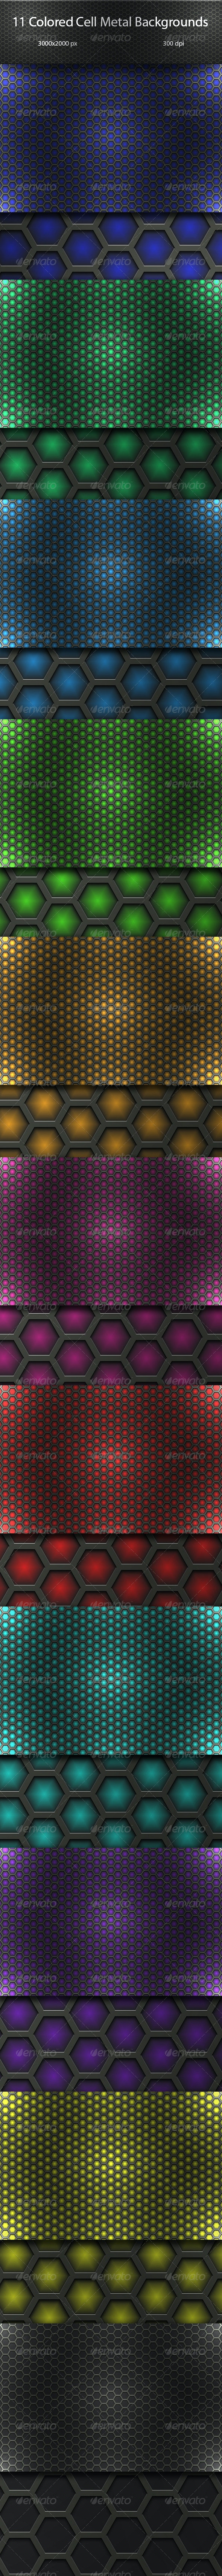 Colored Cell Metal Backgrouds Set - Backgrounds Graphics